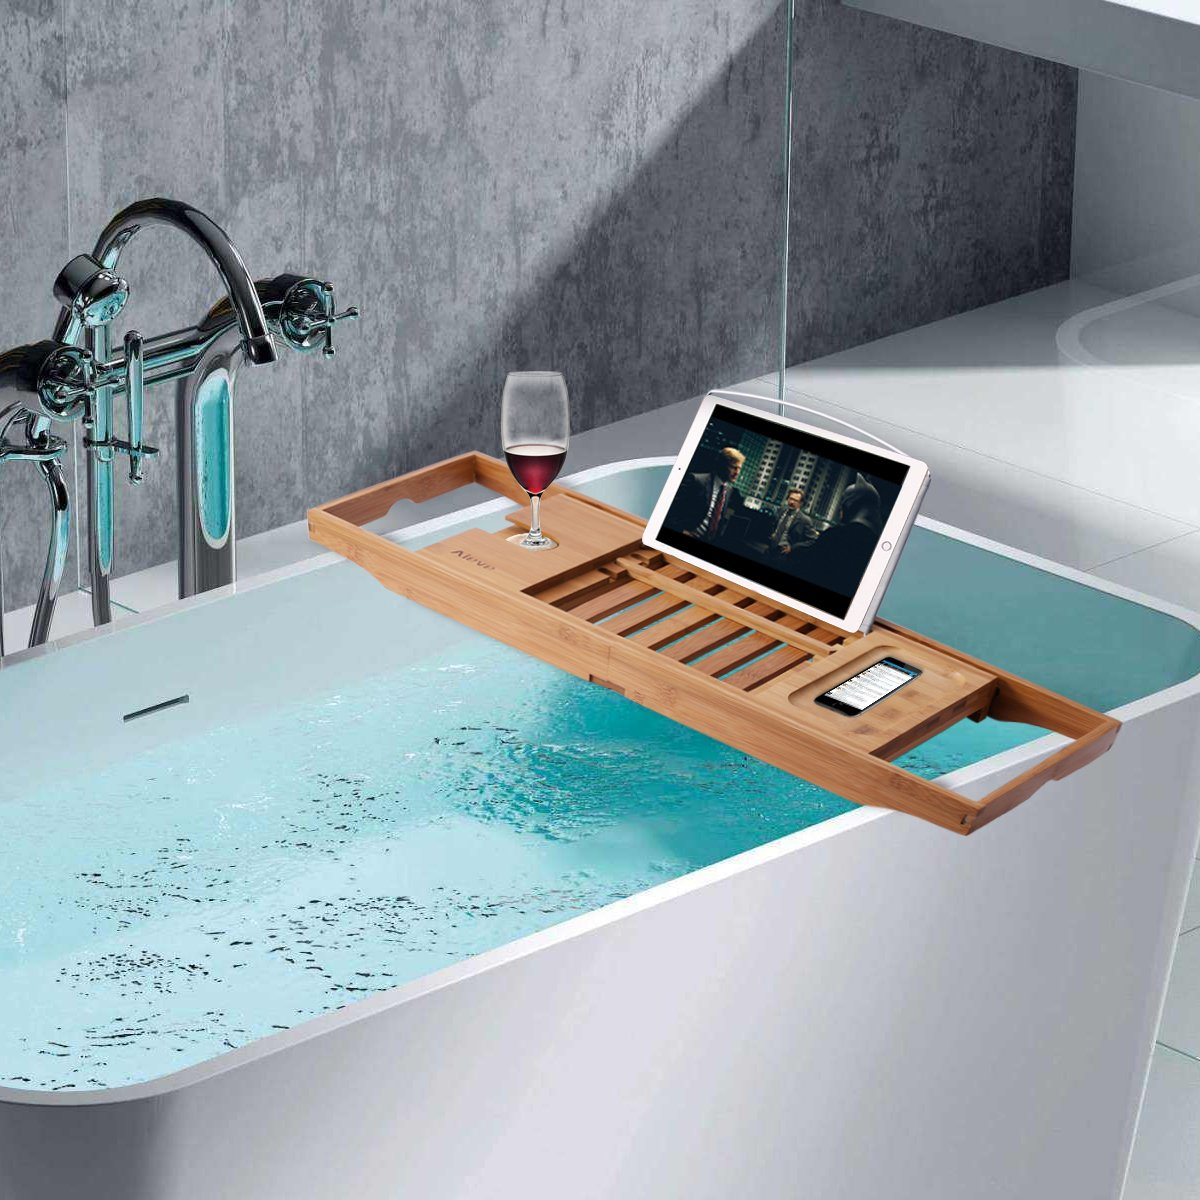 Bathtub Tray and Bath Pillow,Bamboo Bathtub Caddy Tray Bath Tray for Tub with Wine Glass Holder and Book Holder and Spa Bath Pillow with Suction Cups for Head and Neck Support by Aieve (Image #7)